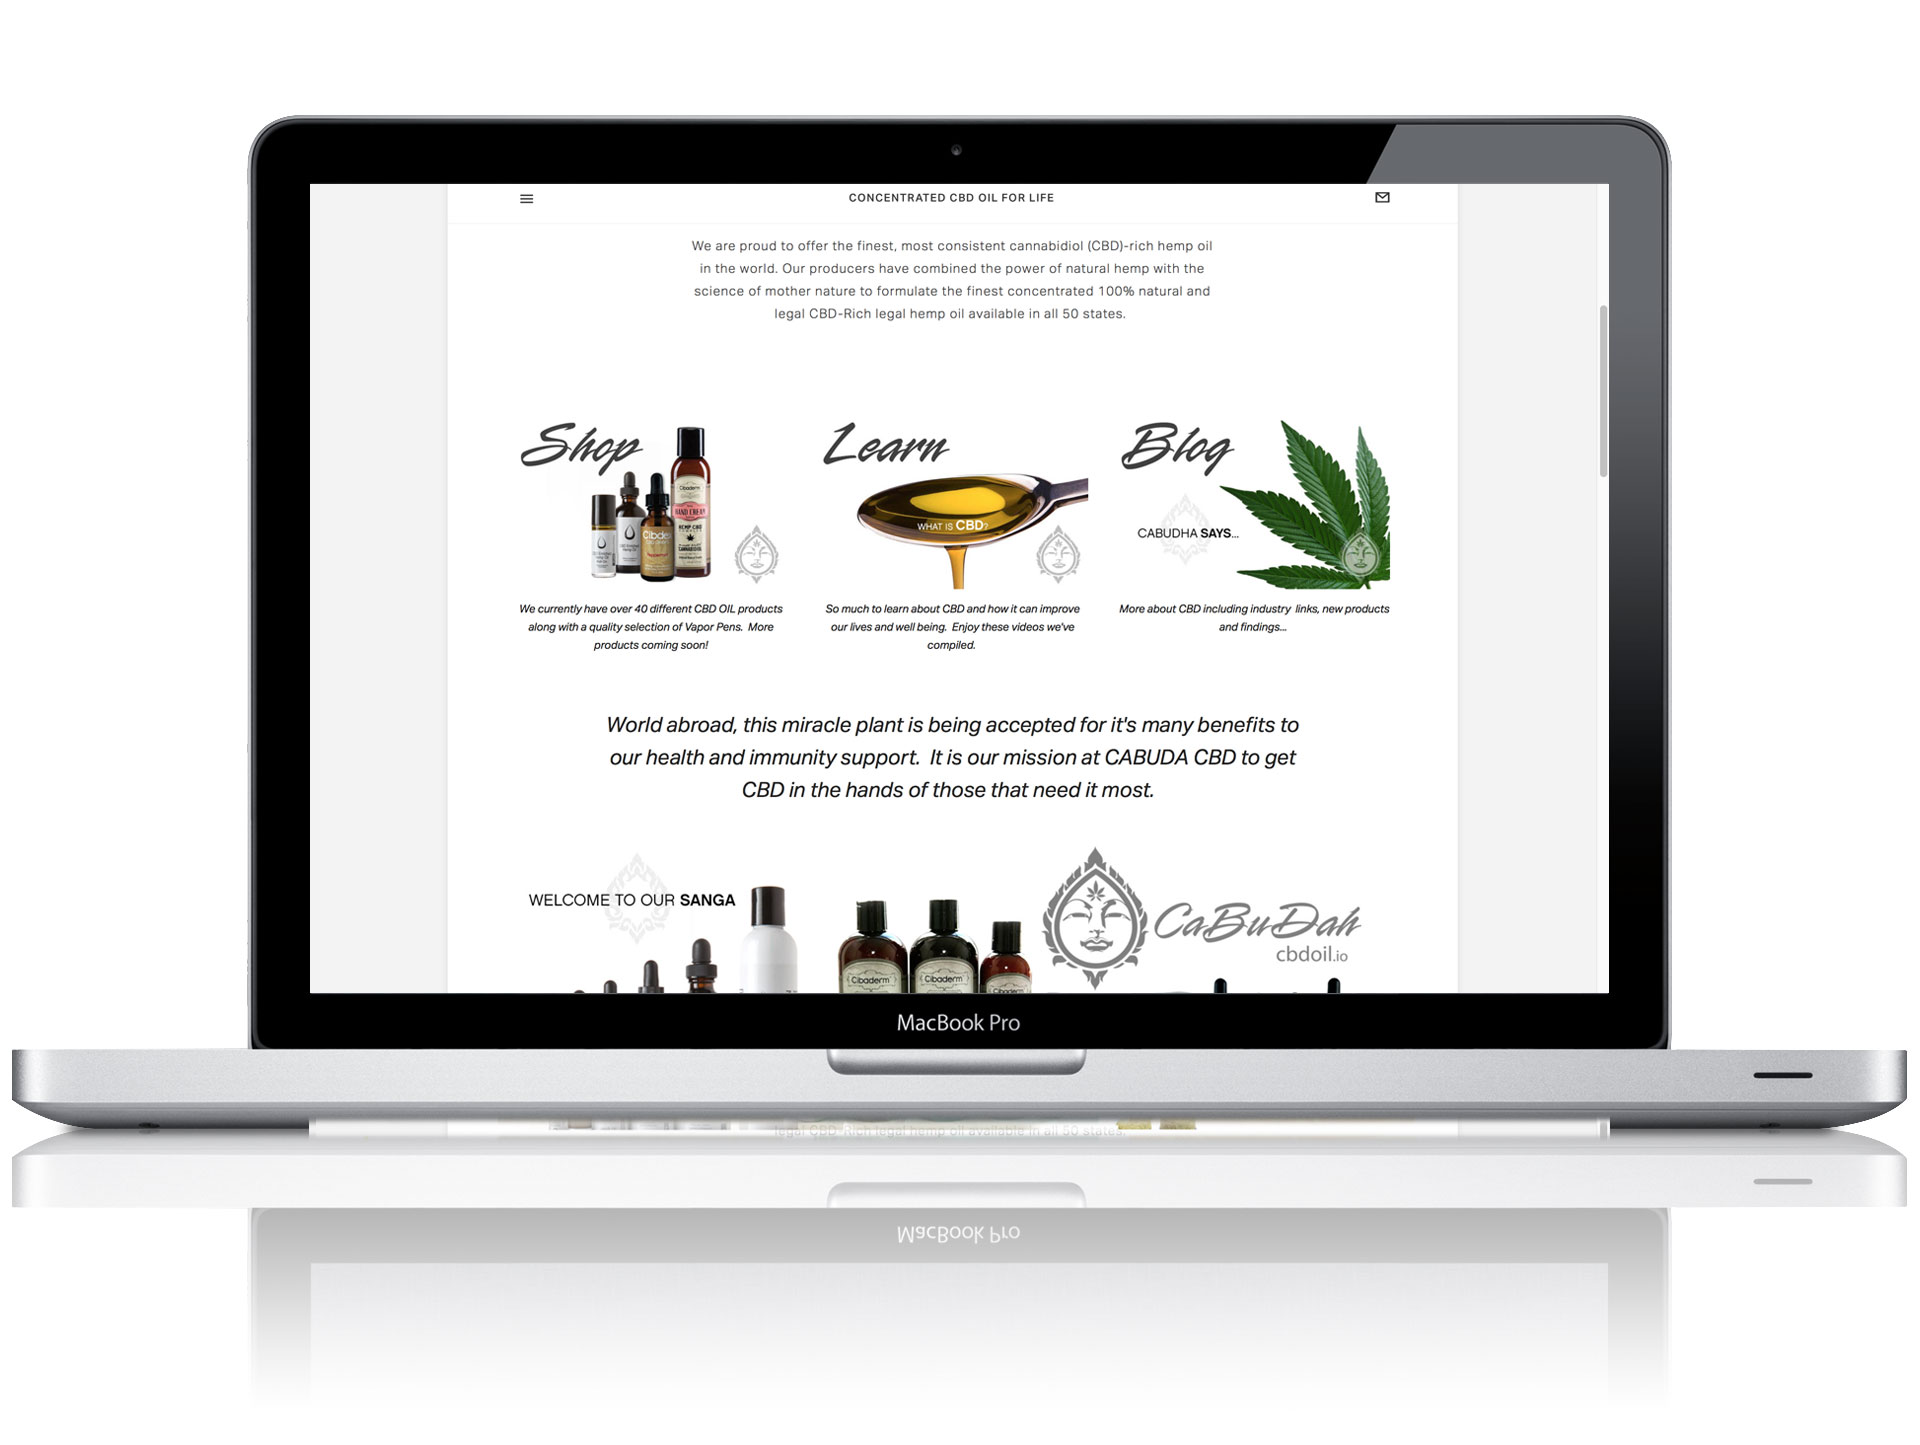 cabudha-cbd-cannabis-website2